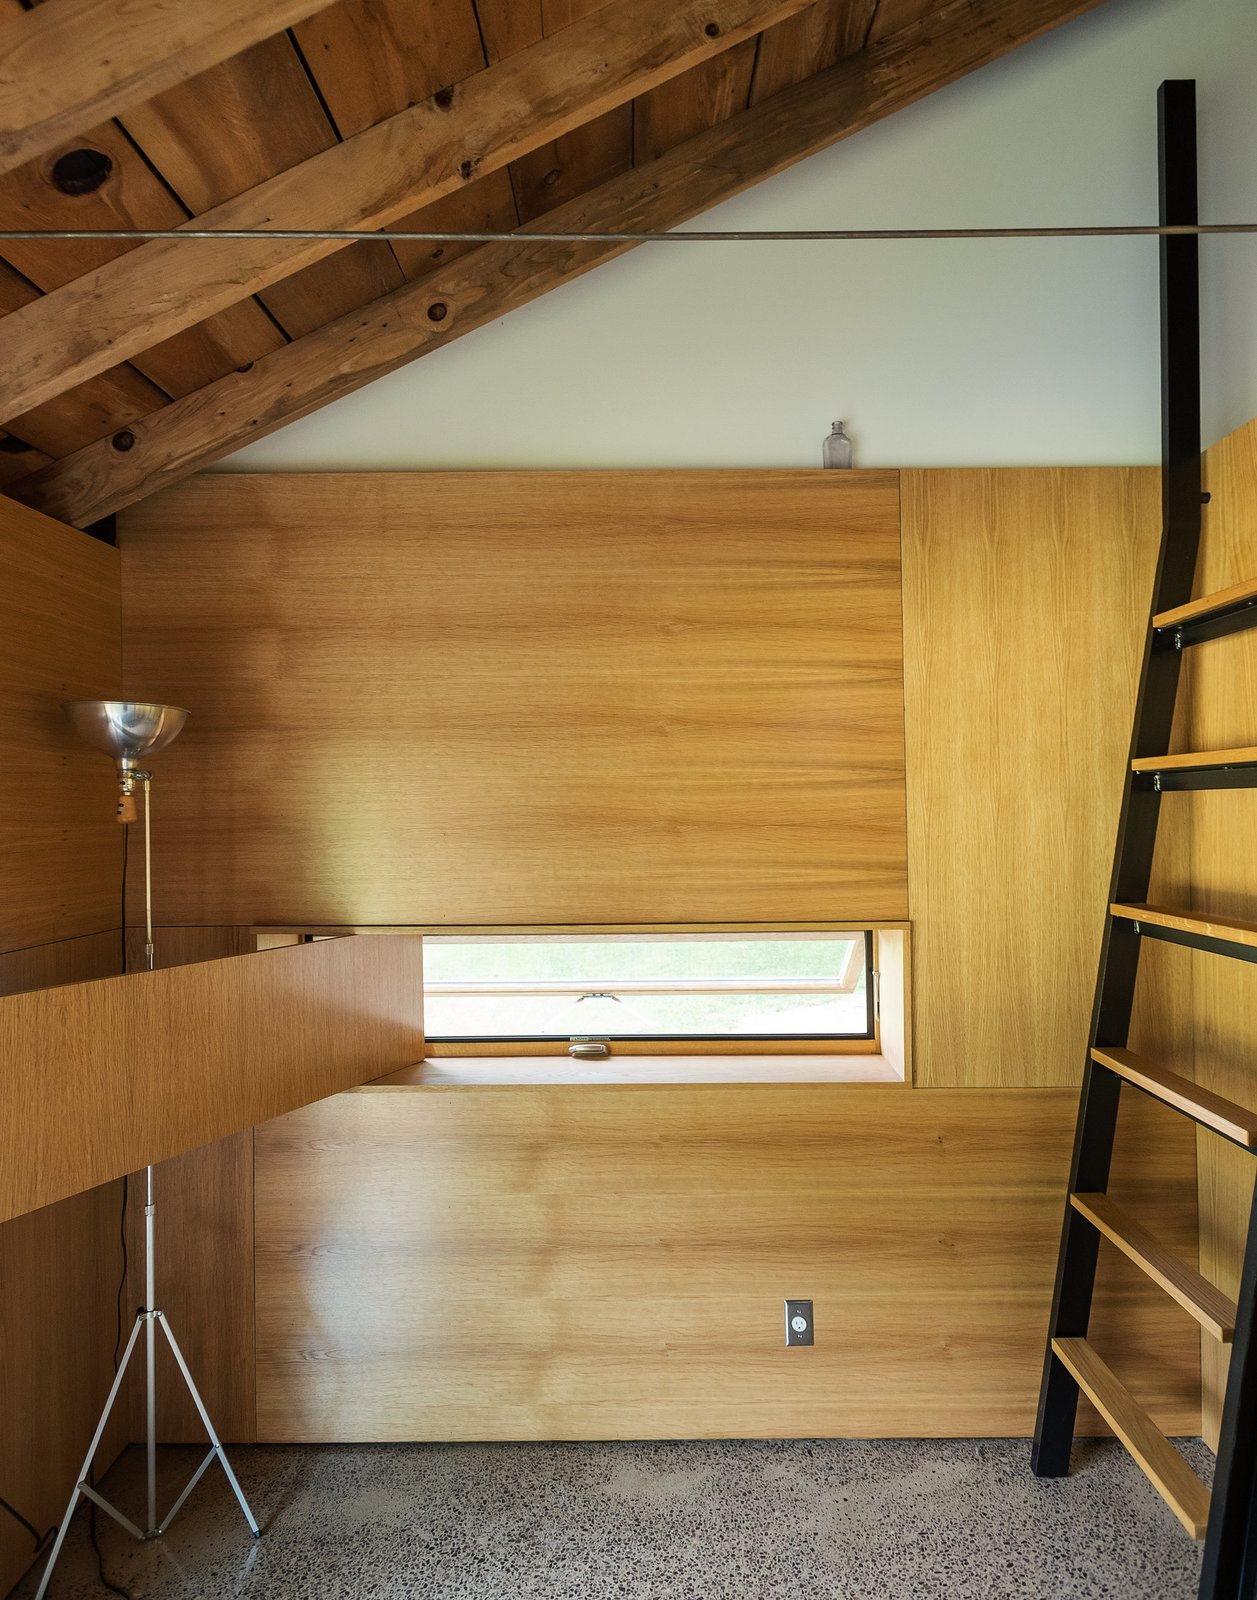 A custom ladder made of bent steel with oak treads leads to the sleeping loft, while a white oak panel swings opens to reveal an inset window. Longtime collaborator Jeffrey Kramer crafted the home's wood elements. Tagged: Shed & Studio, Living Space, and Den.  Photo 6 of 8 in Cottage Industrious